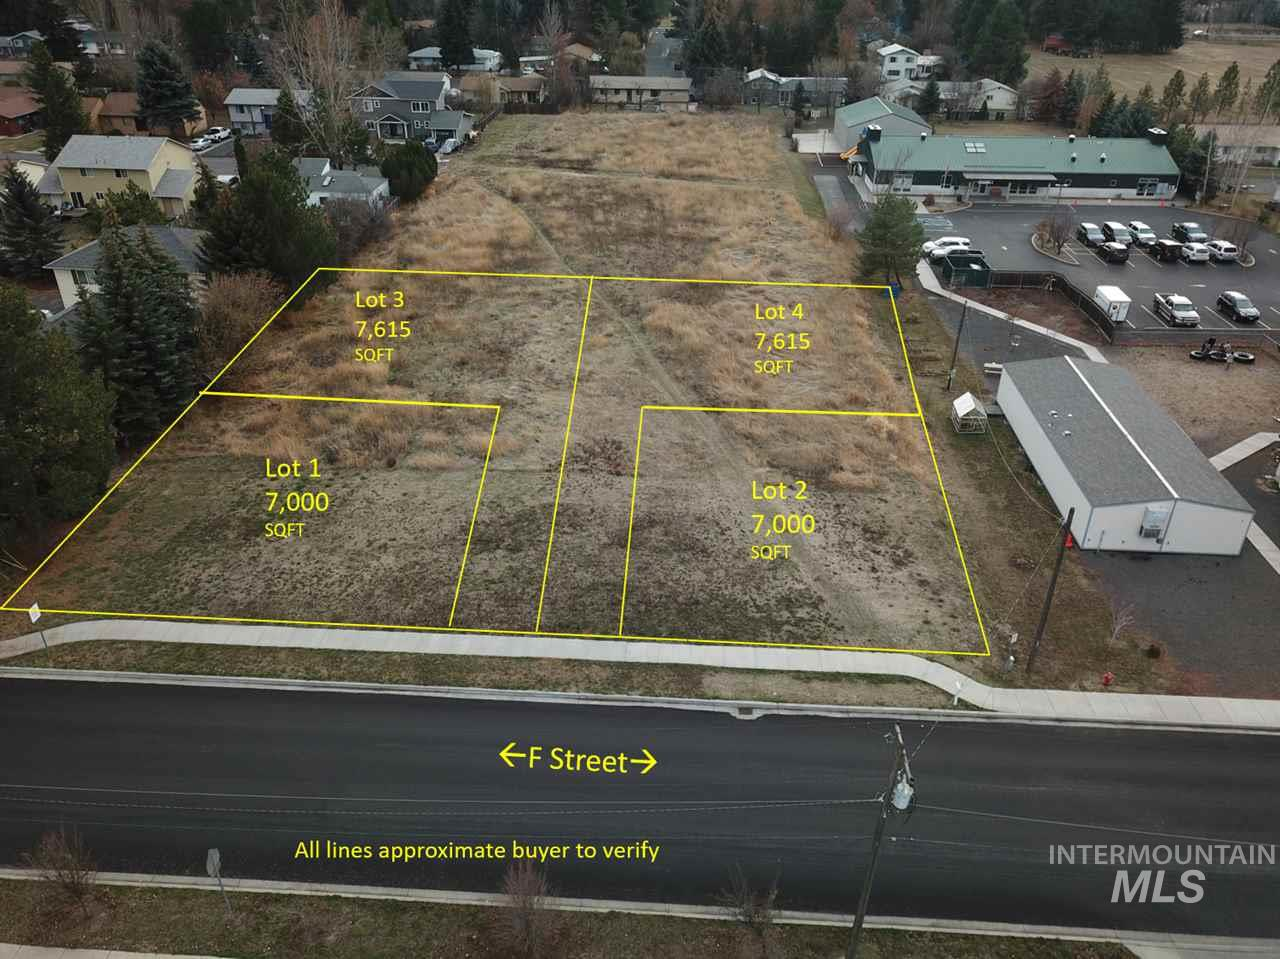 000 F Street Parcel # 2 Property Photo - Moscow, ID real estate listing